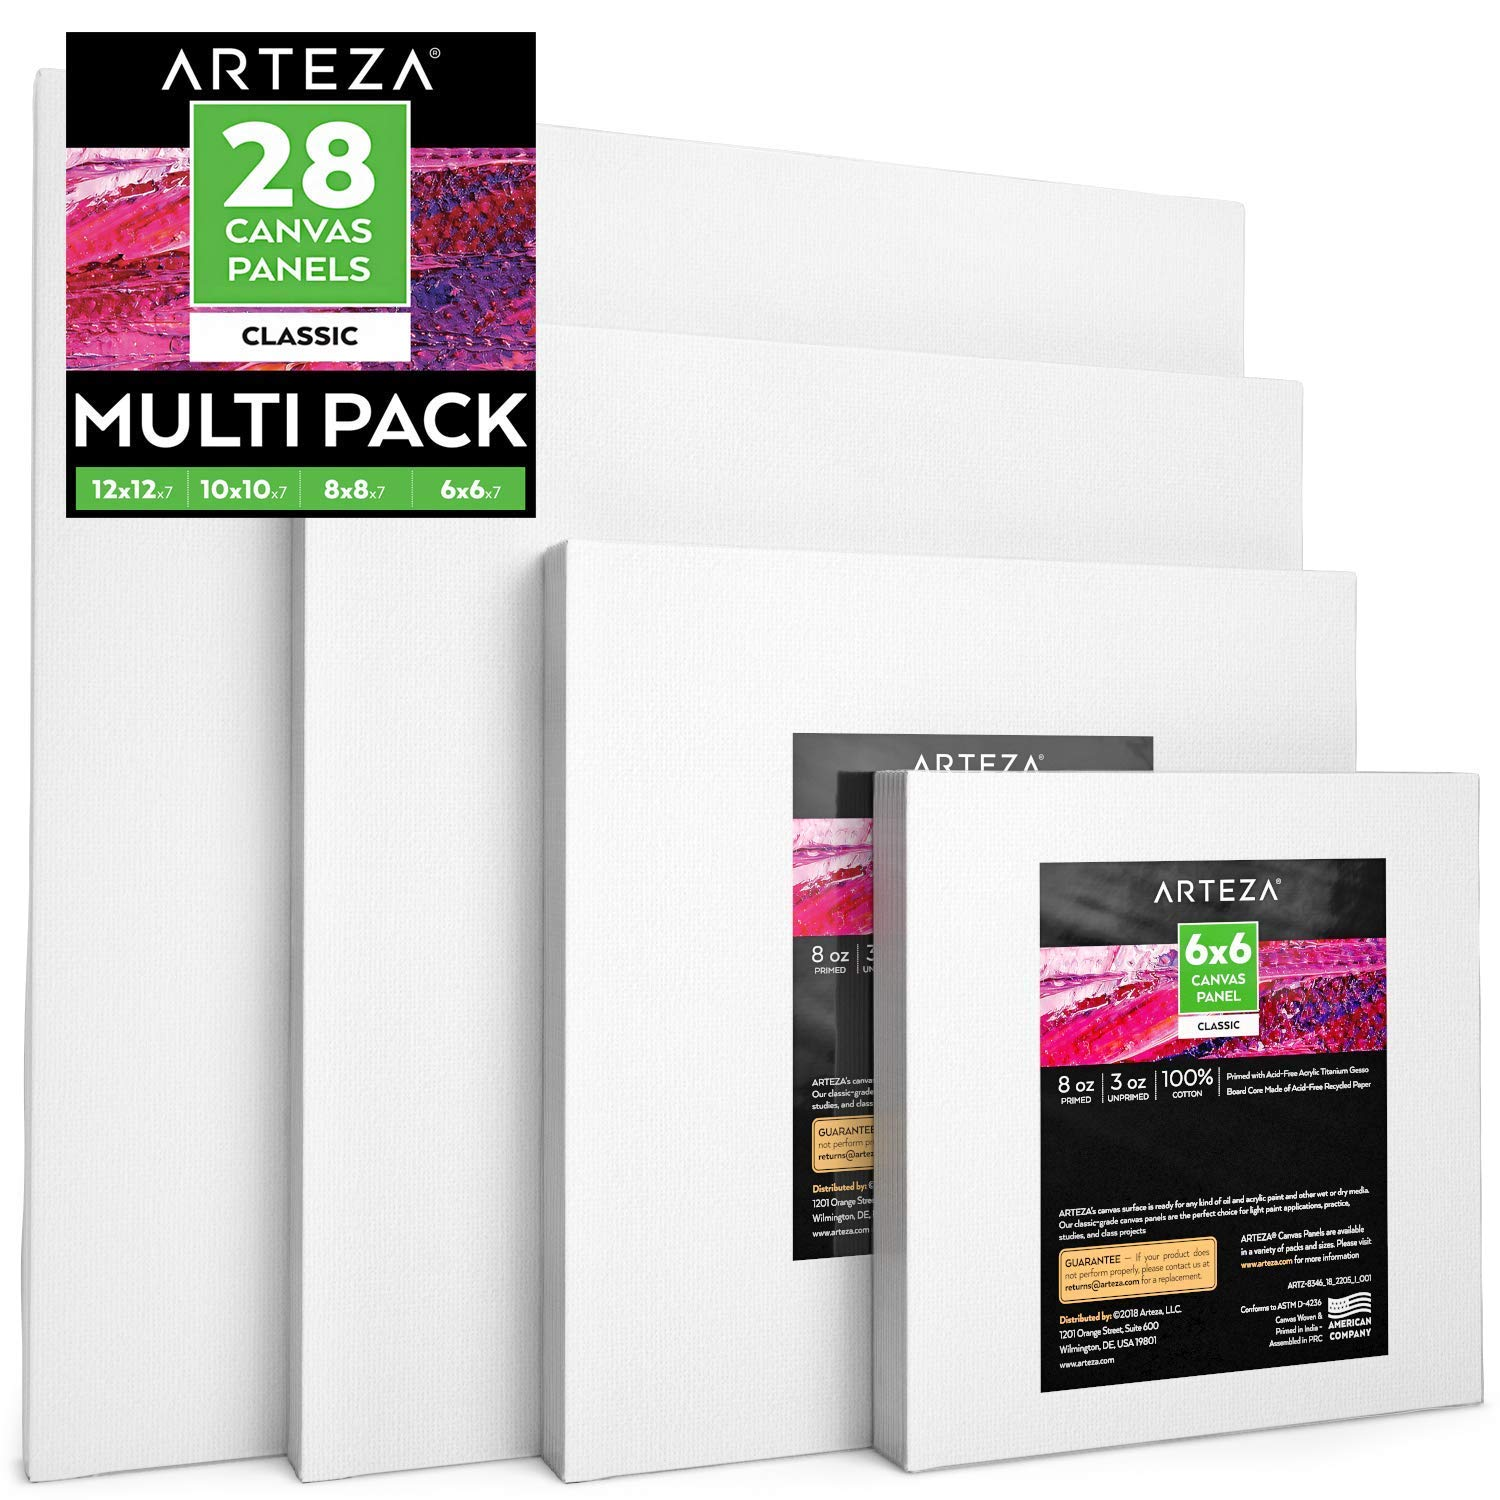 """Arteza Painting Canvas Panels Multi Pack, 6x6"""", 8x8"""", 10x10"""", 12x12"""" Set of 28, Primed White, 100% Cotton with Recycled Board Core, for Acrylic, Oil, Other Wet or Dry Art Media, for Artists"""